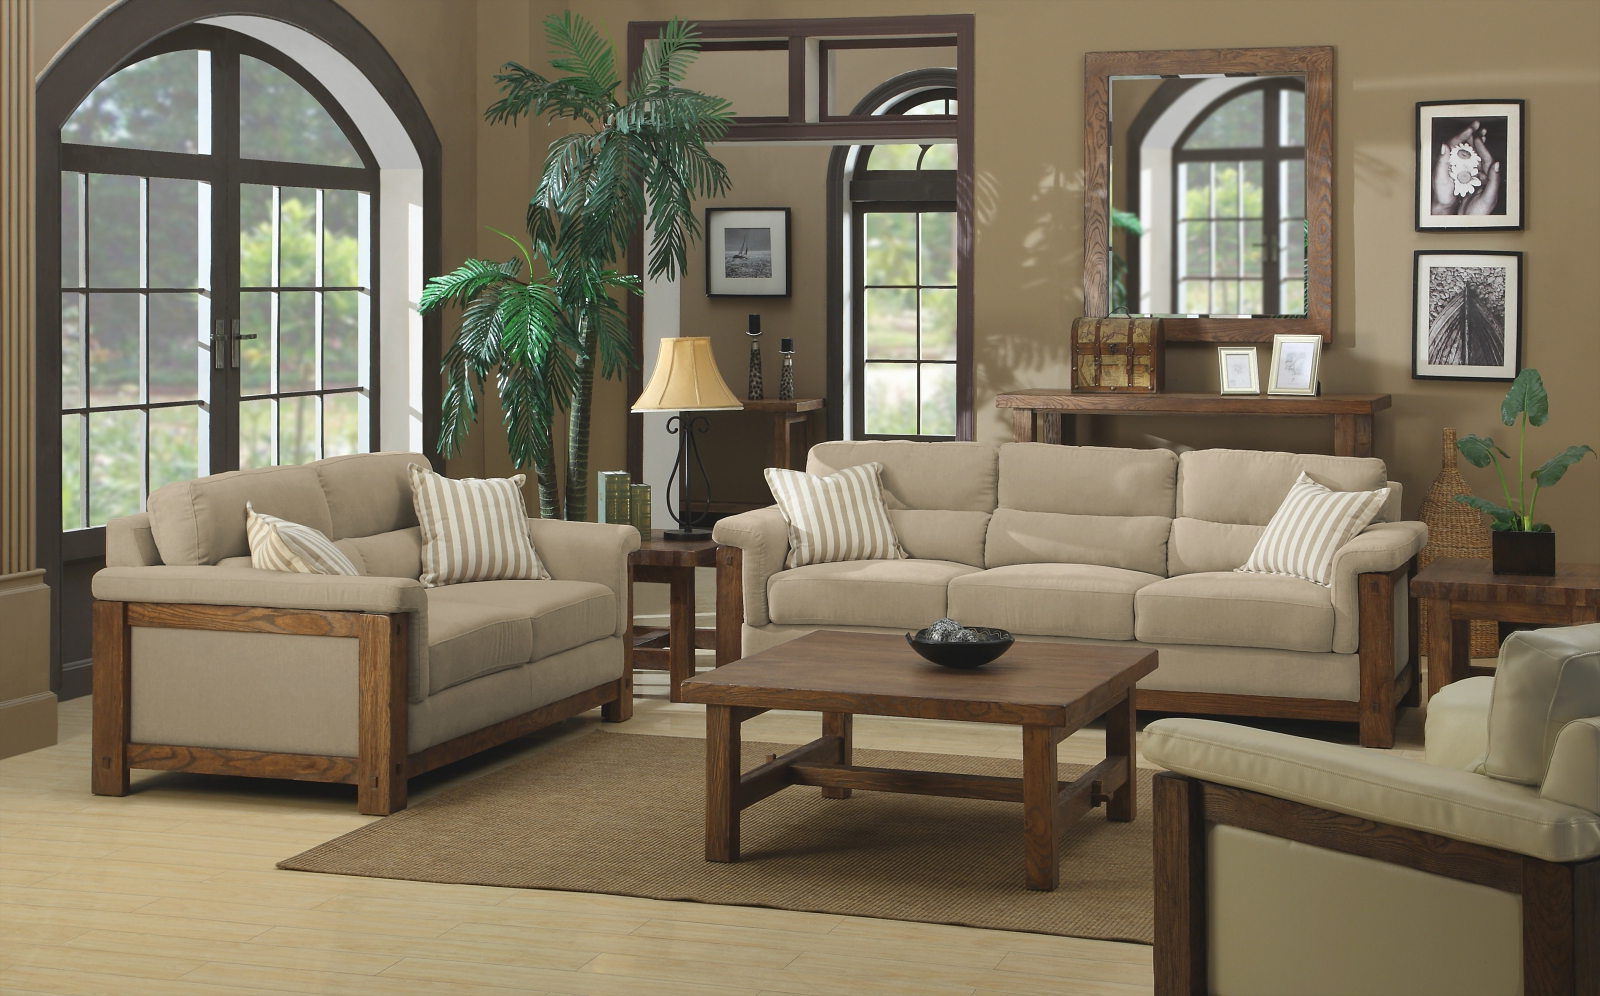 Living room in beige color for Living room color ideas